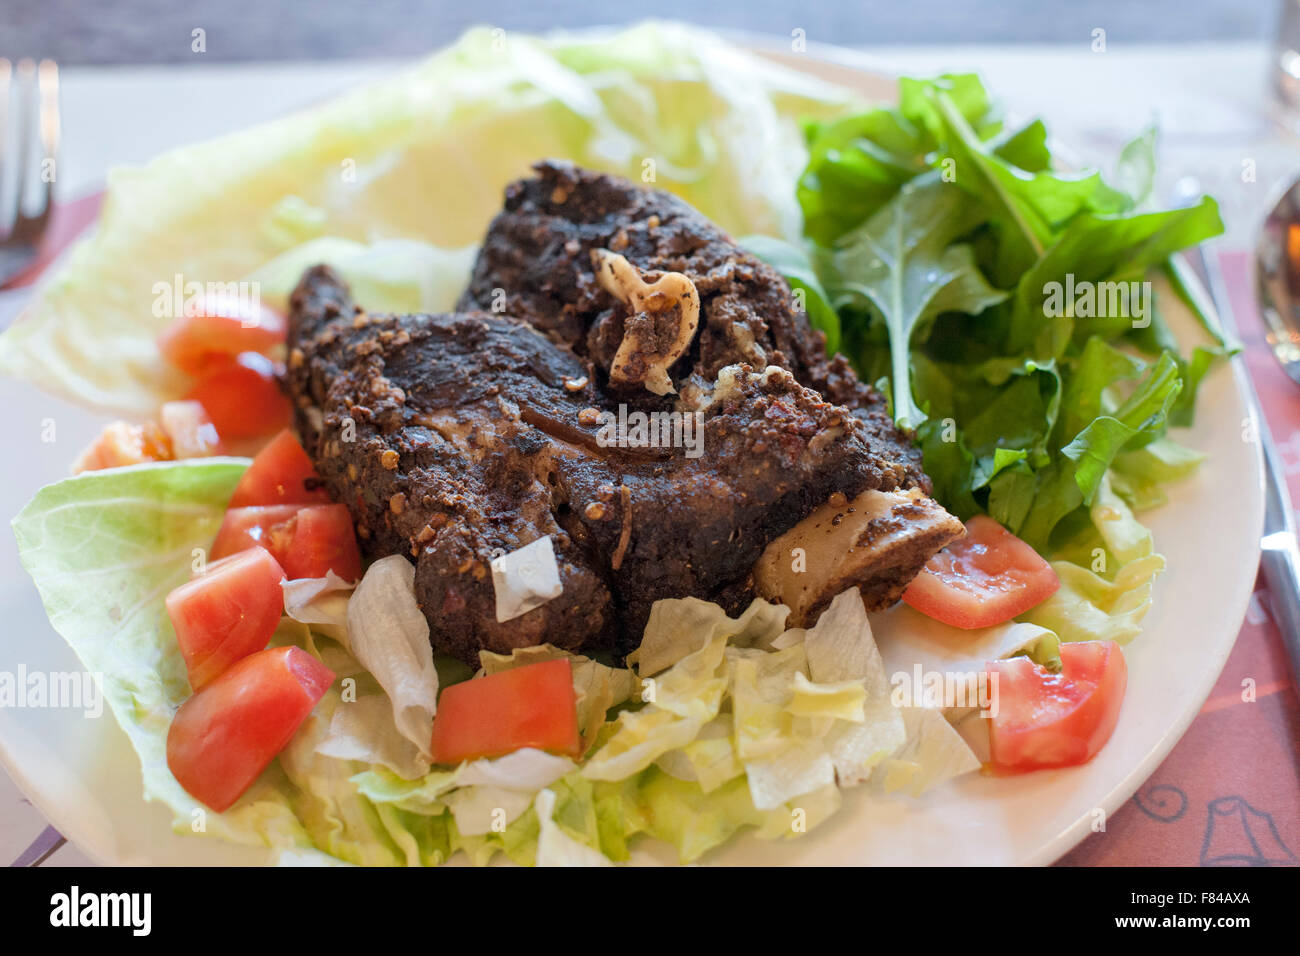 Lamb shewa, a traditional Omani dish as served by the Al Maida restaurant in Muscat, the capital of the Sultanate - Stock Image